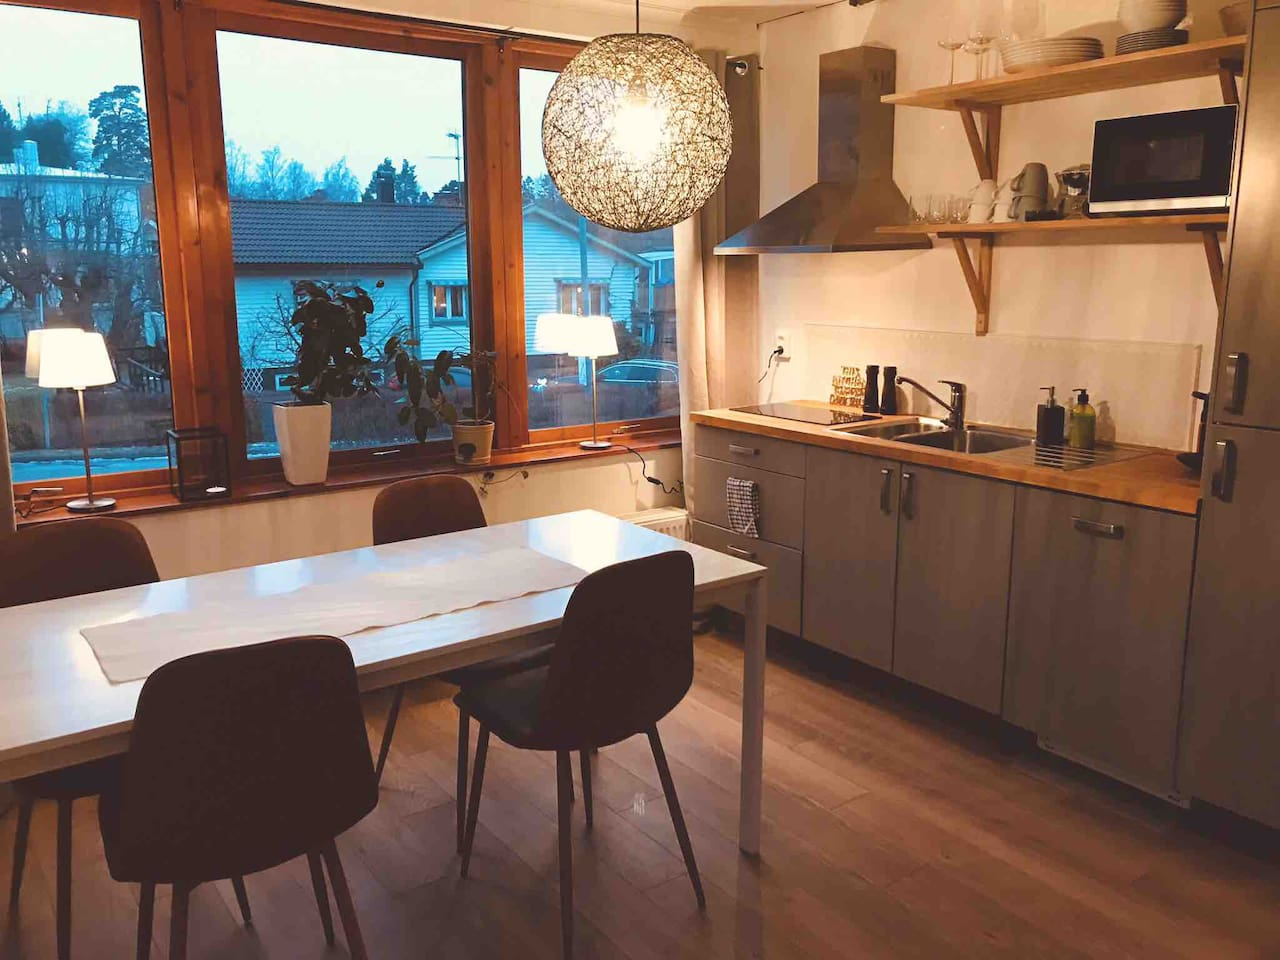 Newly renovated Kitchen. Dinner table. Windows that allow lots of sun.